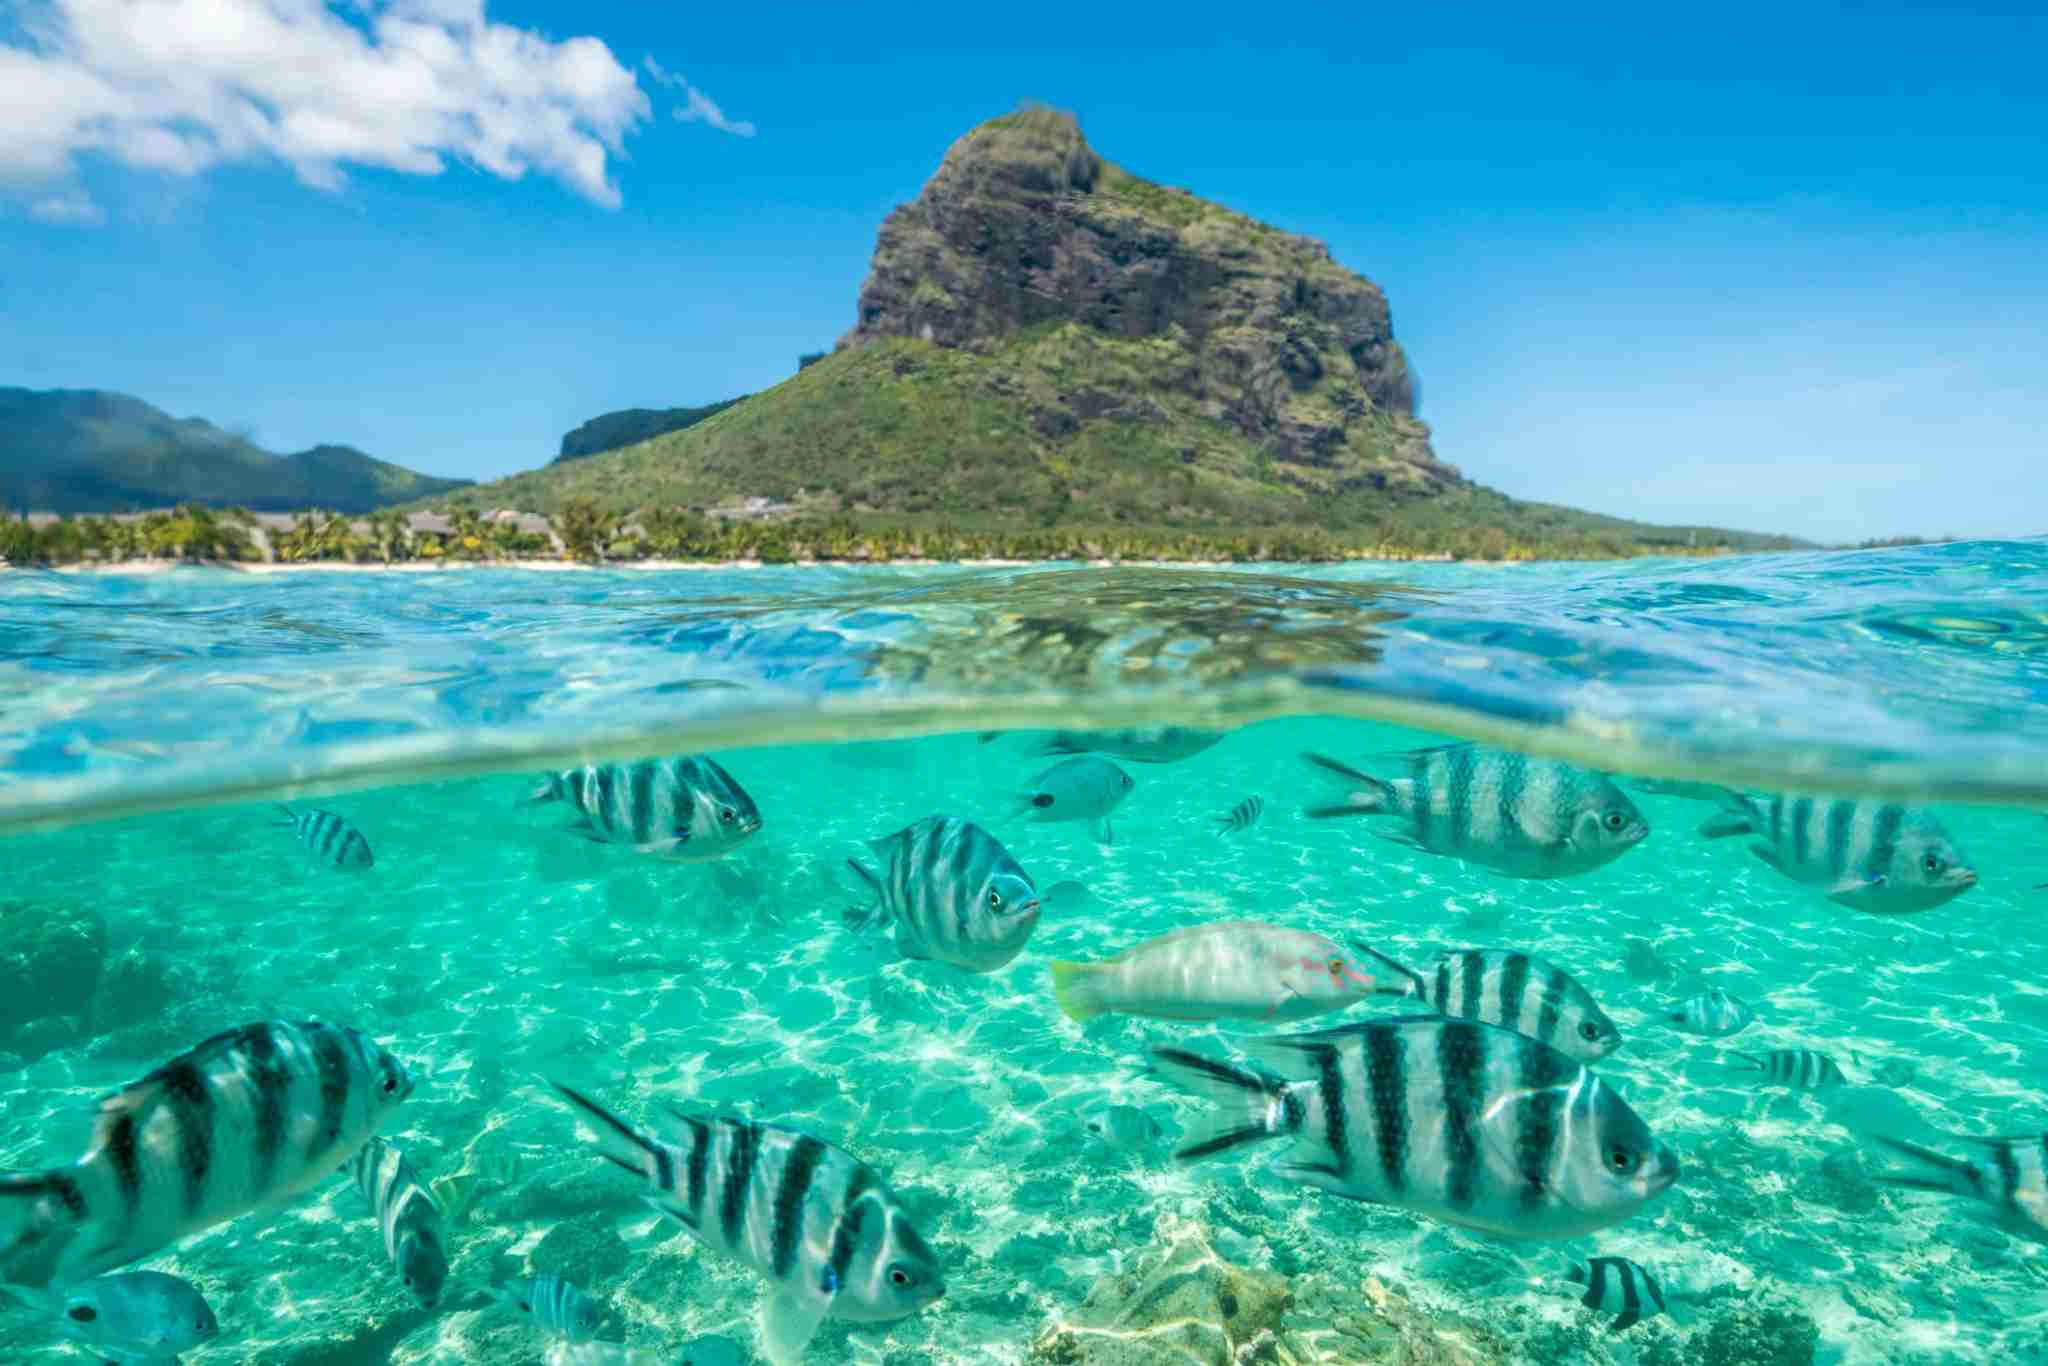 Striped tropical fish swimming under waves along coral reef, Le Morne Brabant, Black River district, Indian Ocean, Mauritius (Photo by Roberto Moiola/Getty Images)